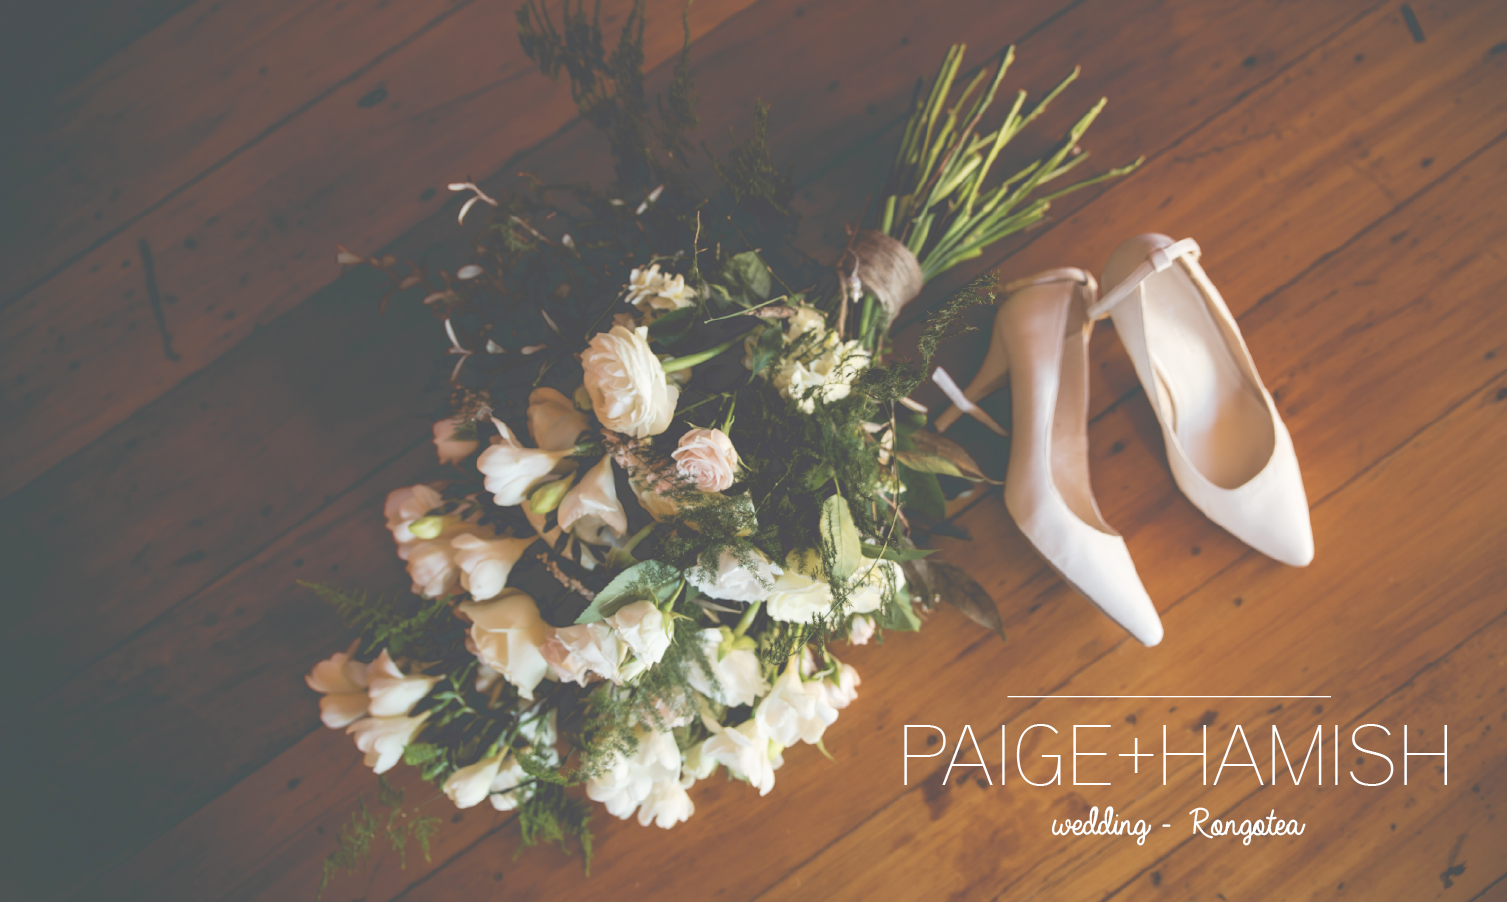 Check out Paige & Hamish's winter wedding goodness!